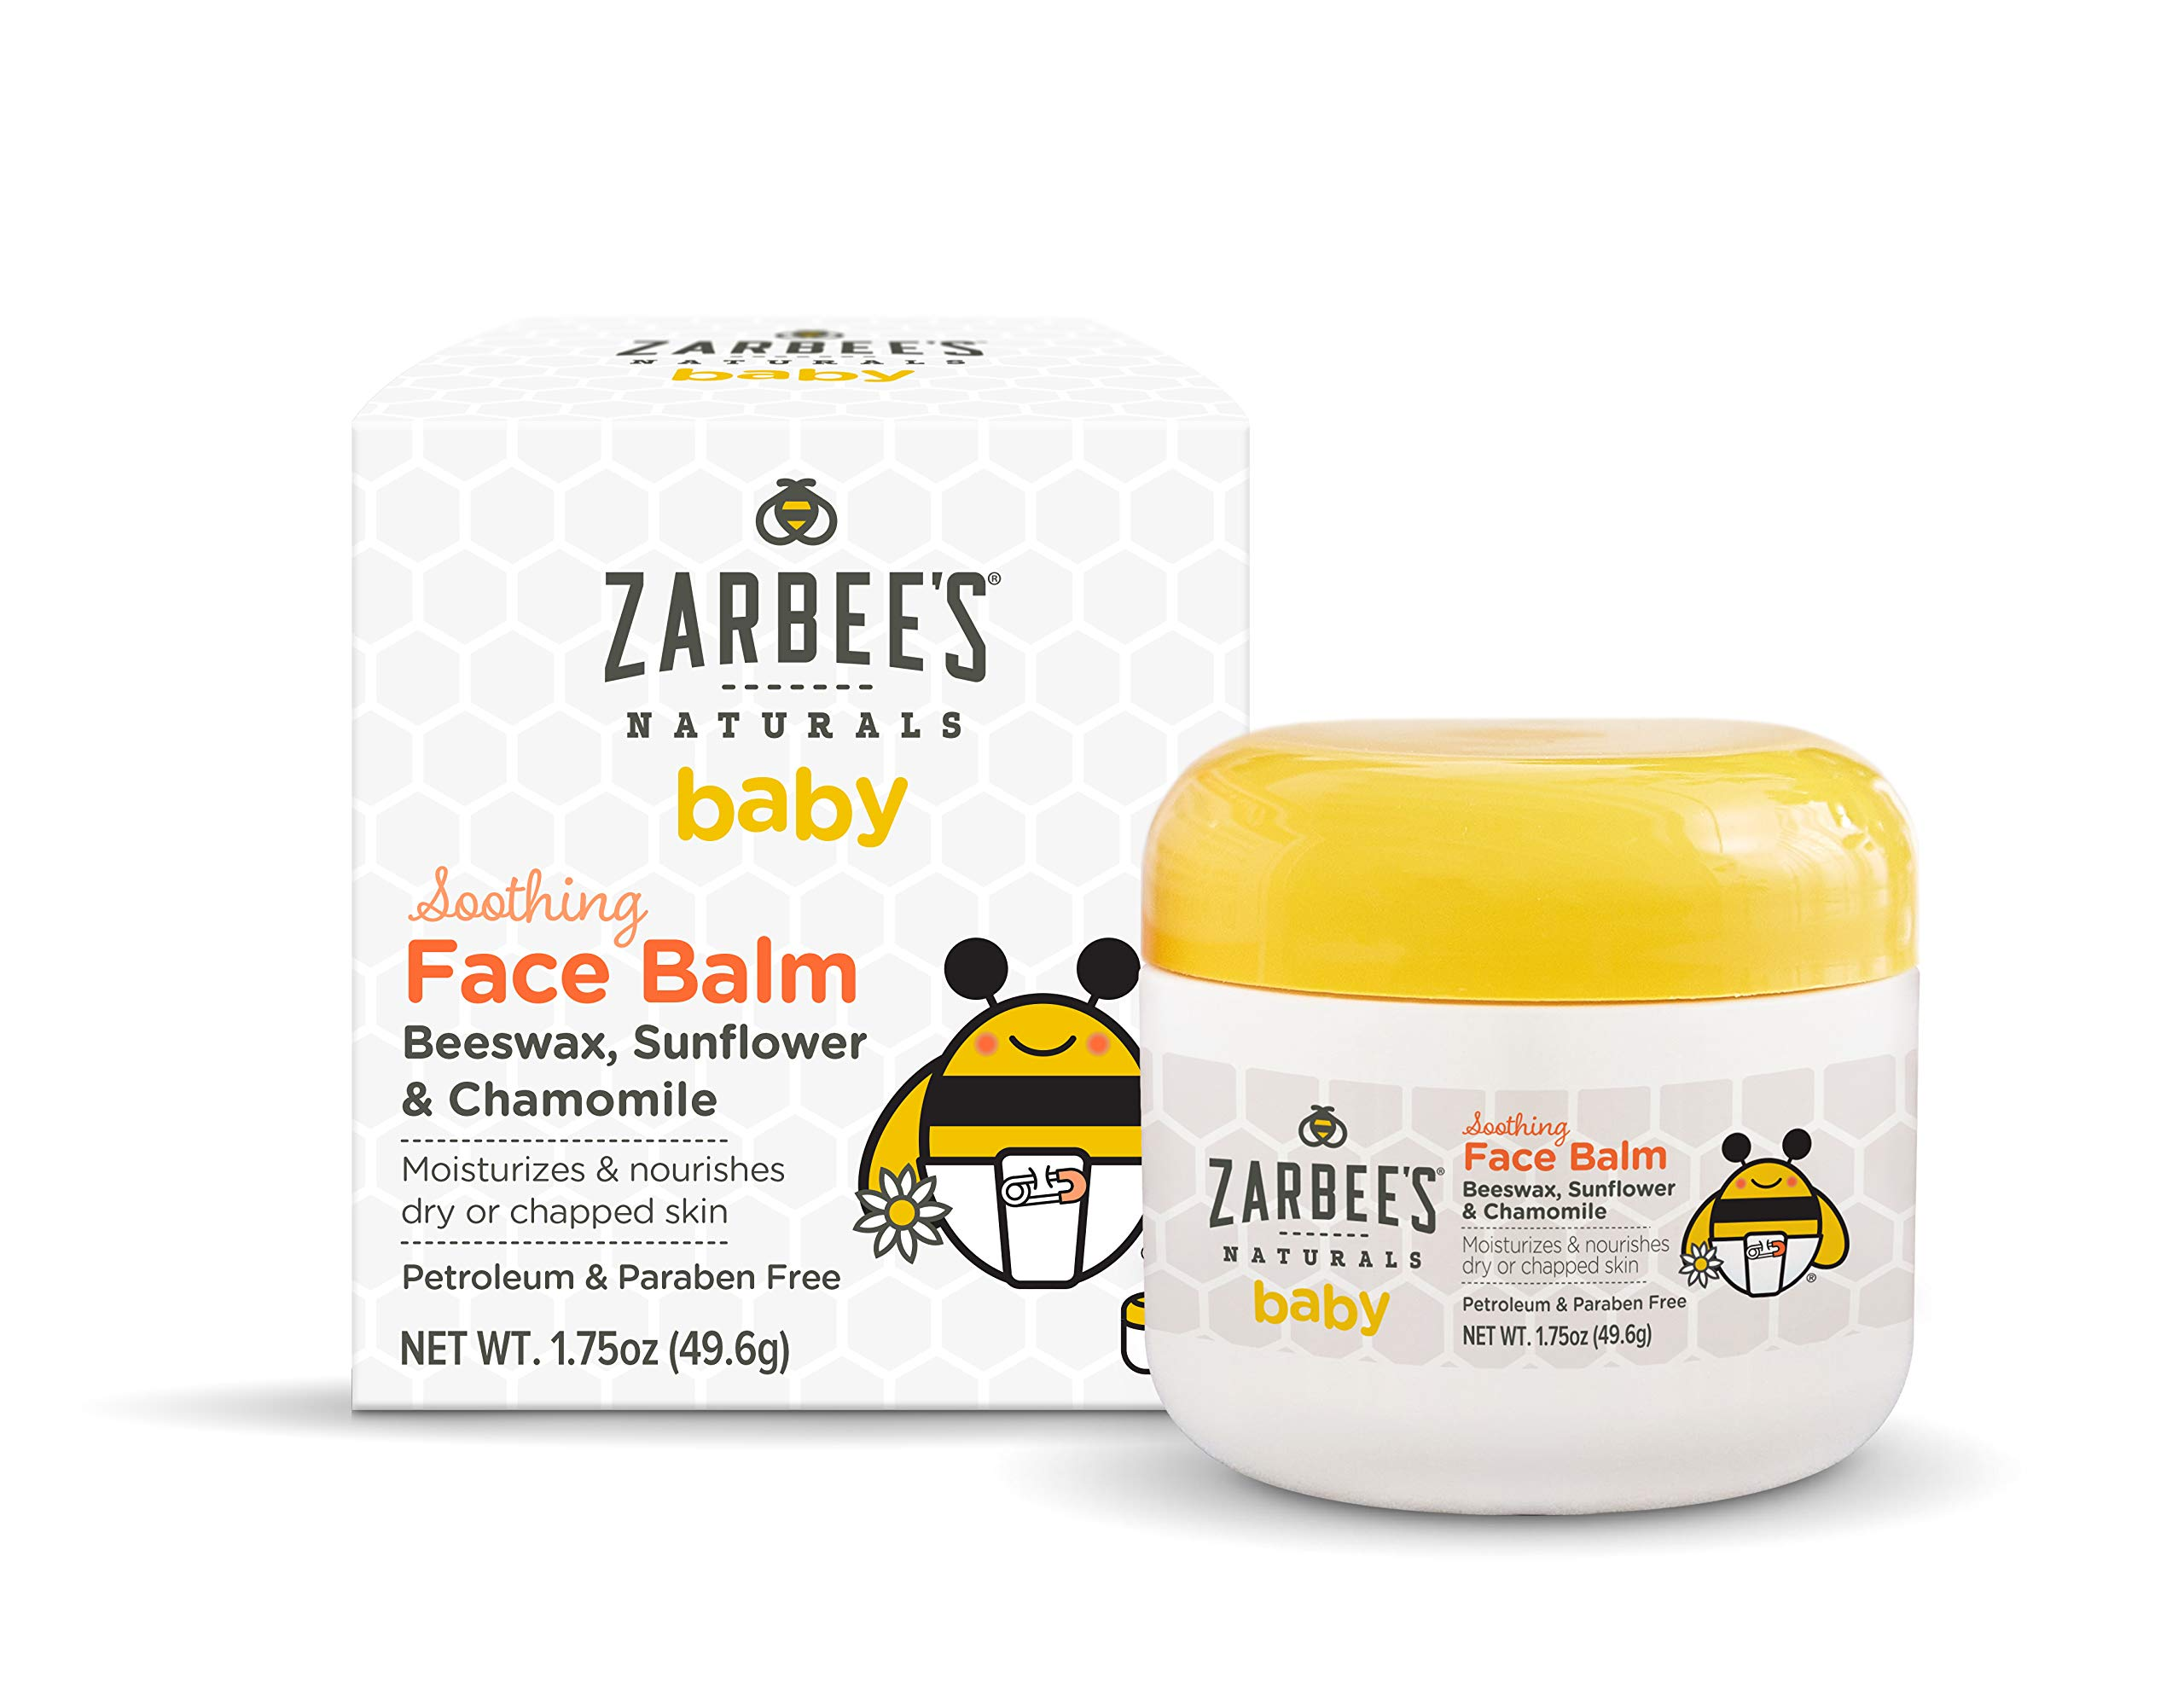 Zarbee's Naturals Baby Soothing Face Balm, 1.75 Ounces, with Beeswax, Sunflower & Chamomile by Zarbee's Naturals